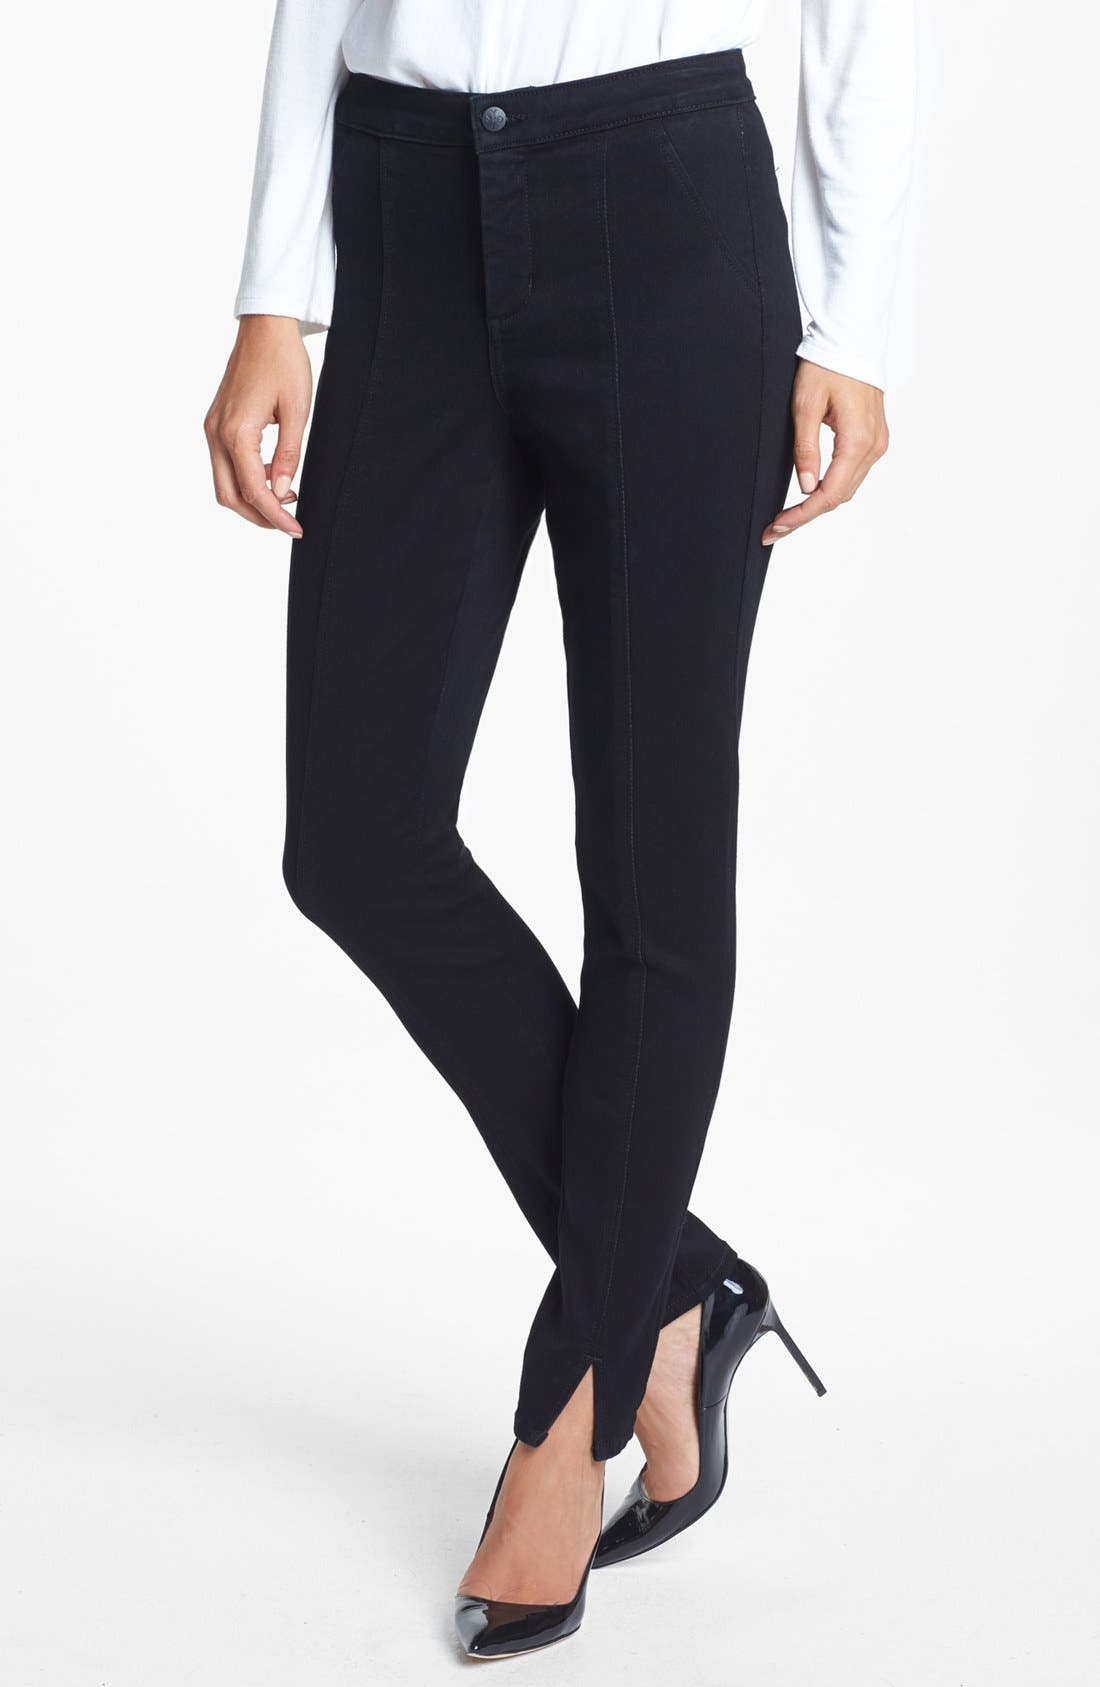 Alternate Image 1 Selected - NYDJ 'Lotus' Stretch Skinny Jeans (Overdye Black)